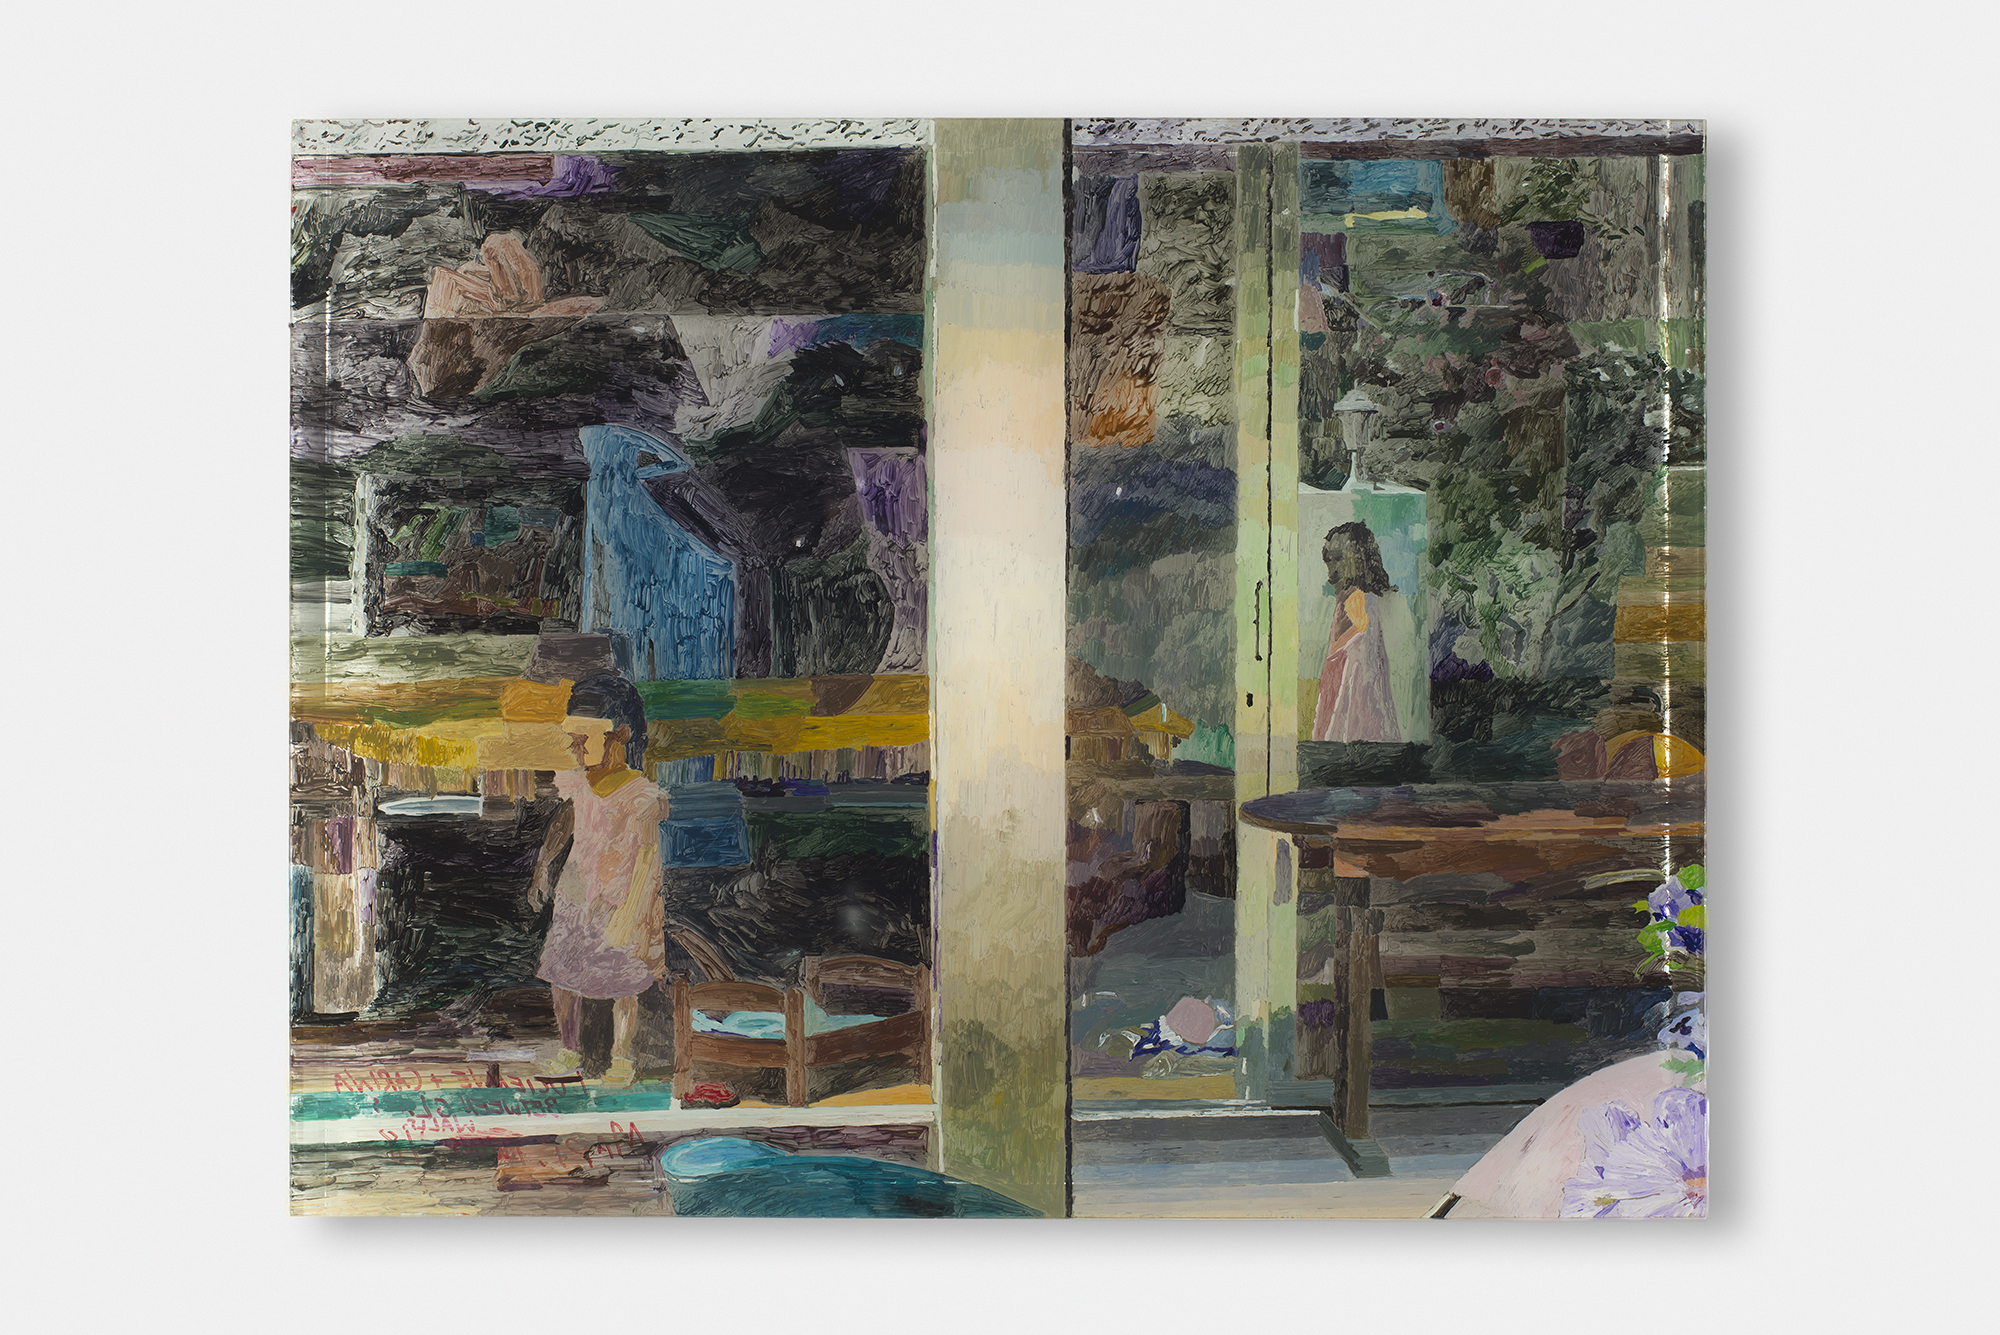 """Lucienne and Carina Between Glass Walls , 2018, Acrylic on plexiglass with epoxy, 20 1/2"""" x 16"""""""